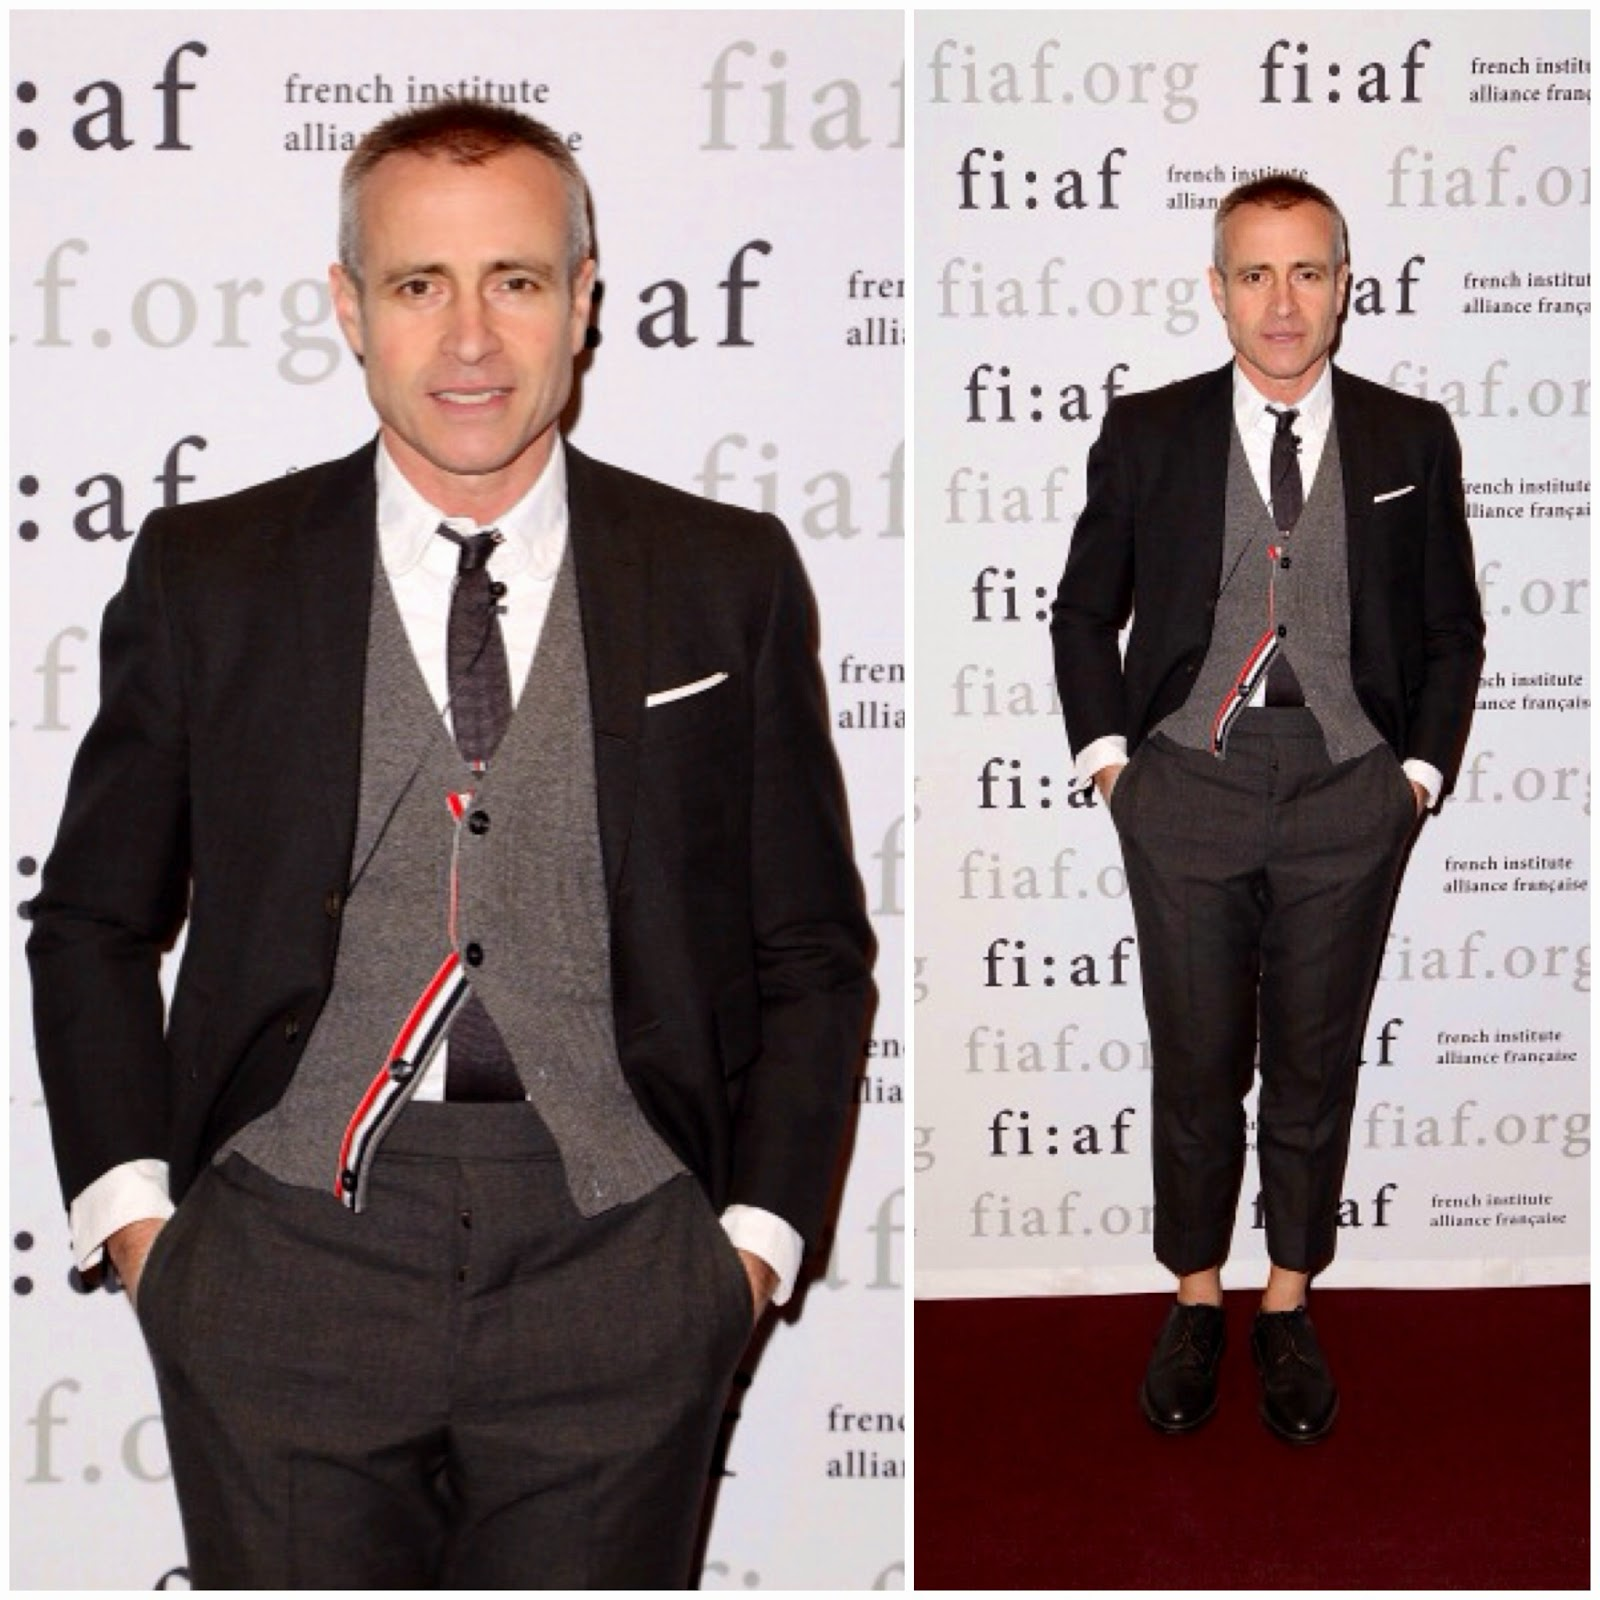 Thom Browne in Thom Browne - Fashion at FIAF Presents: An Evening With Thom Browne And Robin Givhan